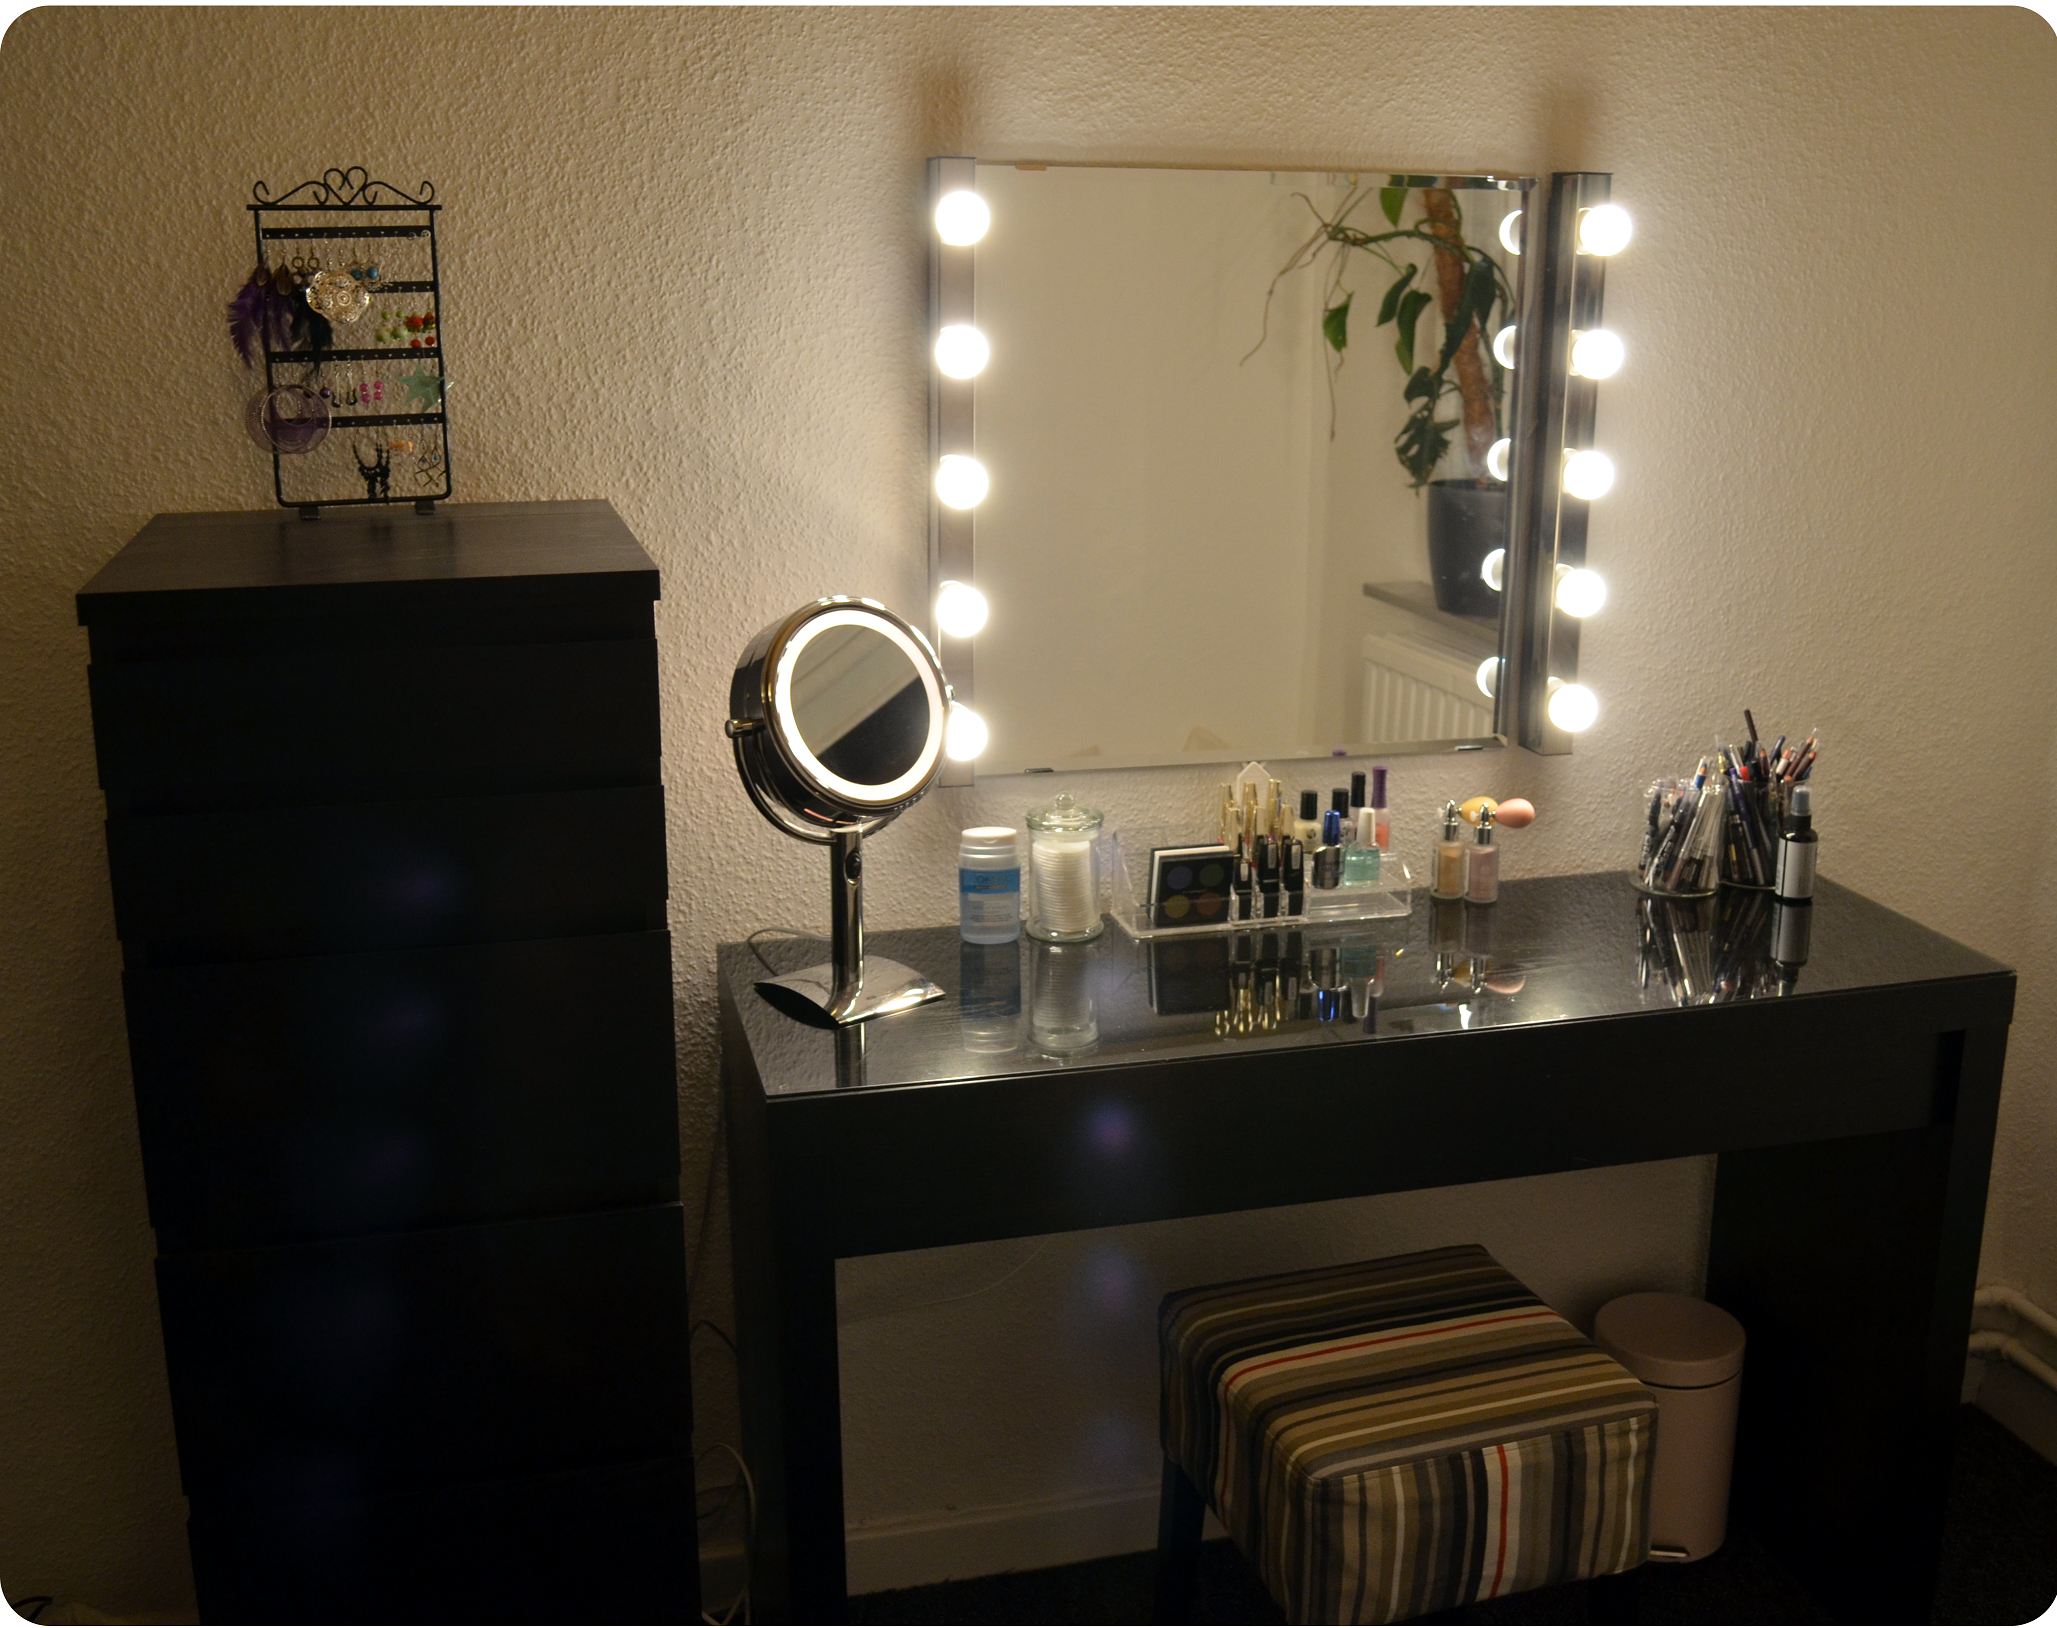 Best 25 vanity lights ikea ideas on pinterest vanity table with ikea malm vanity ikea kolja mirror ikea musik vanity lights ikea malm dresser geotapseo Choice Image